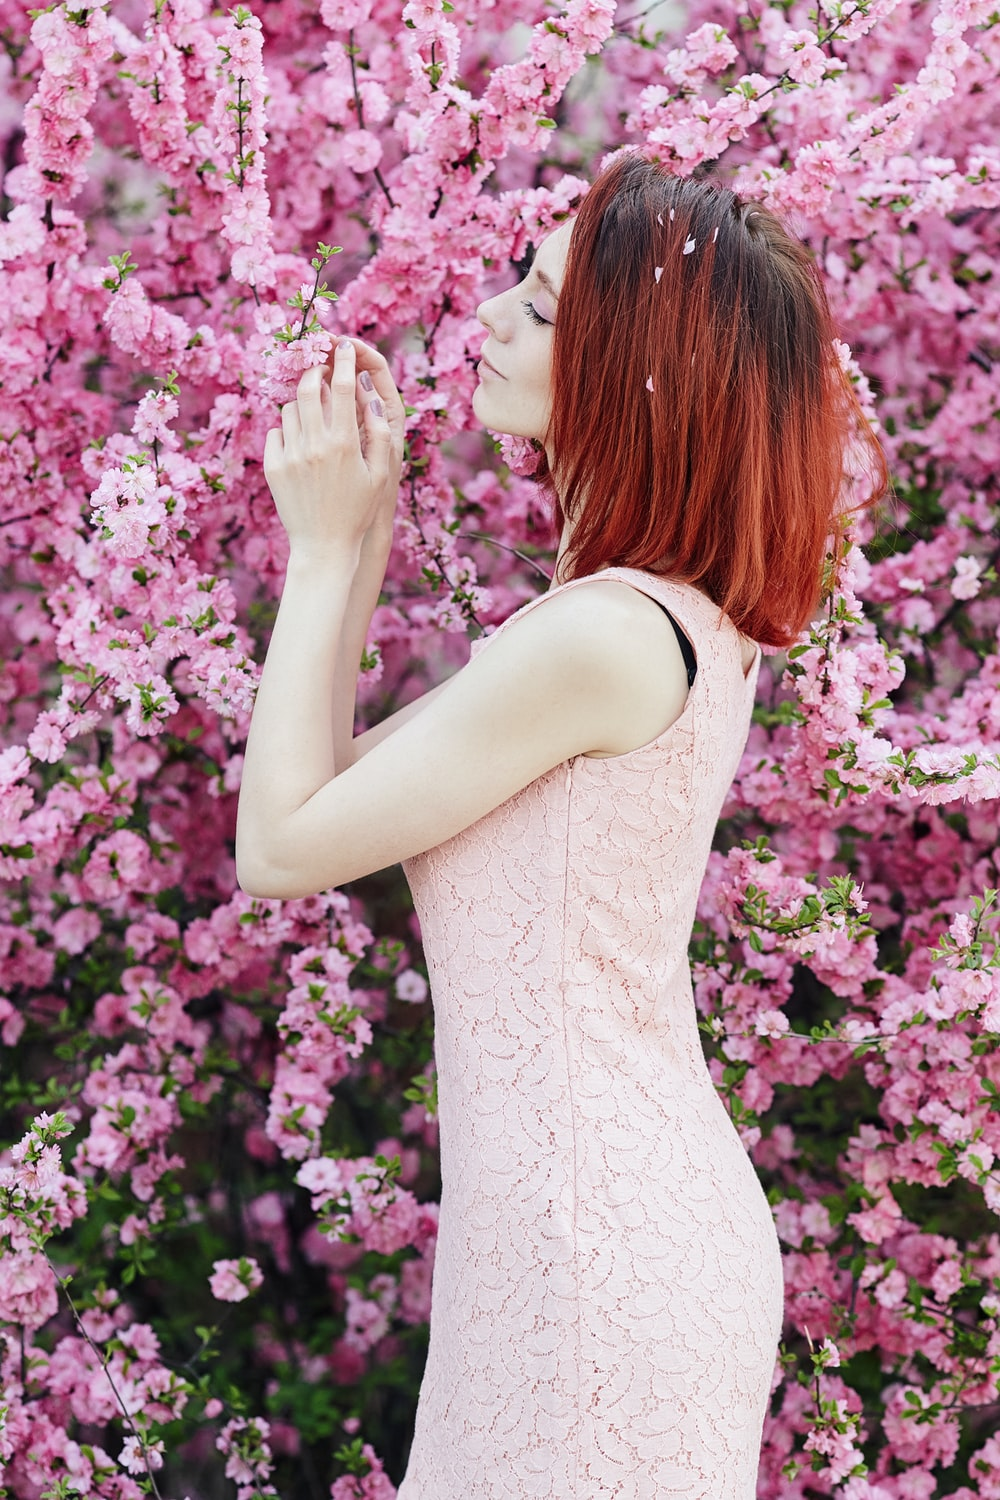 woman in white sleeveless dress standing on pink flower field during daytime